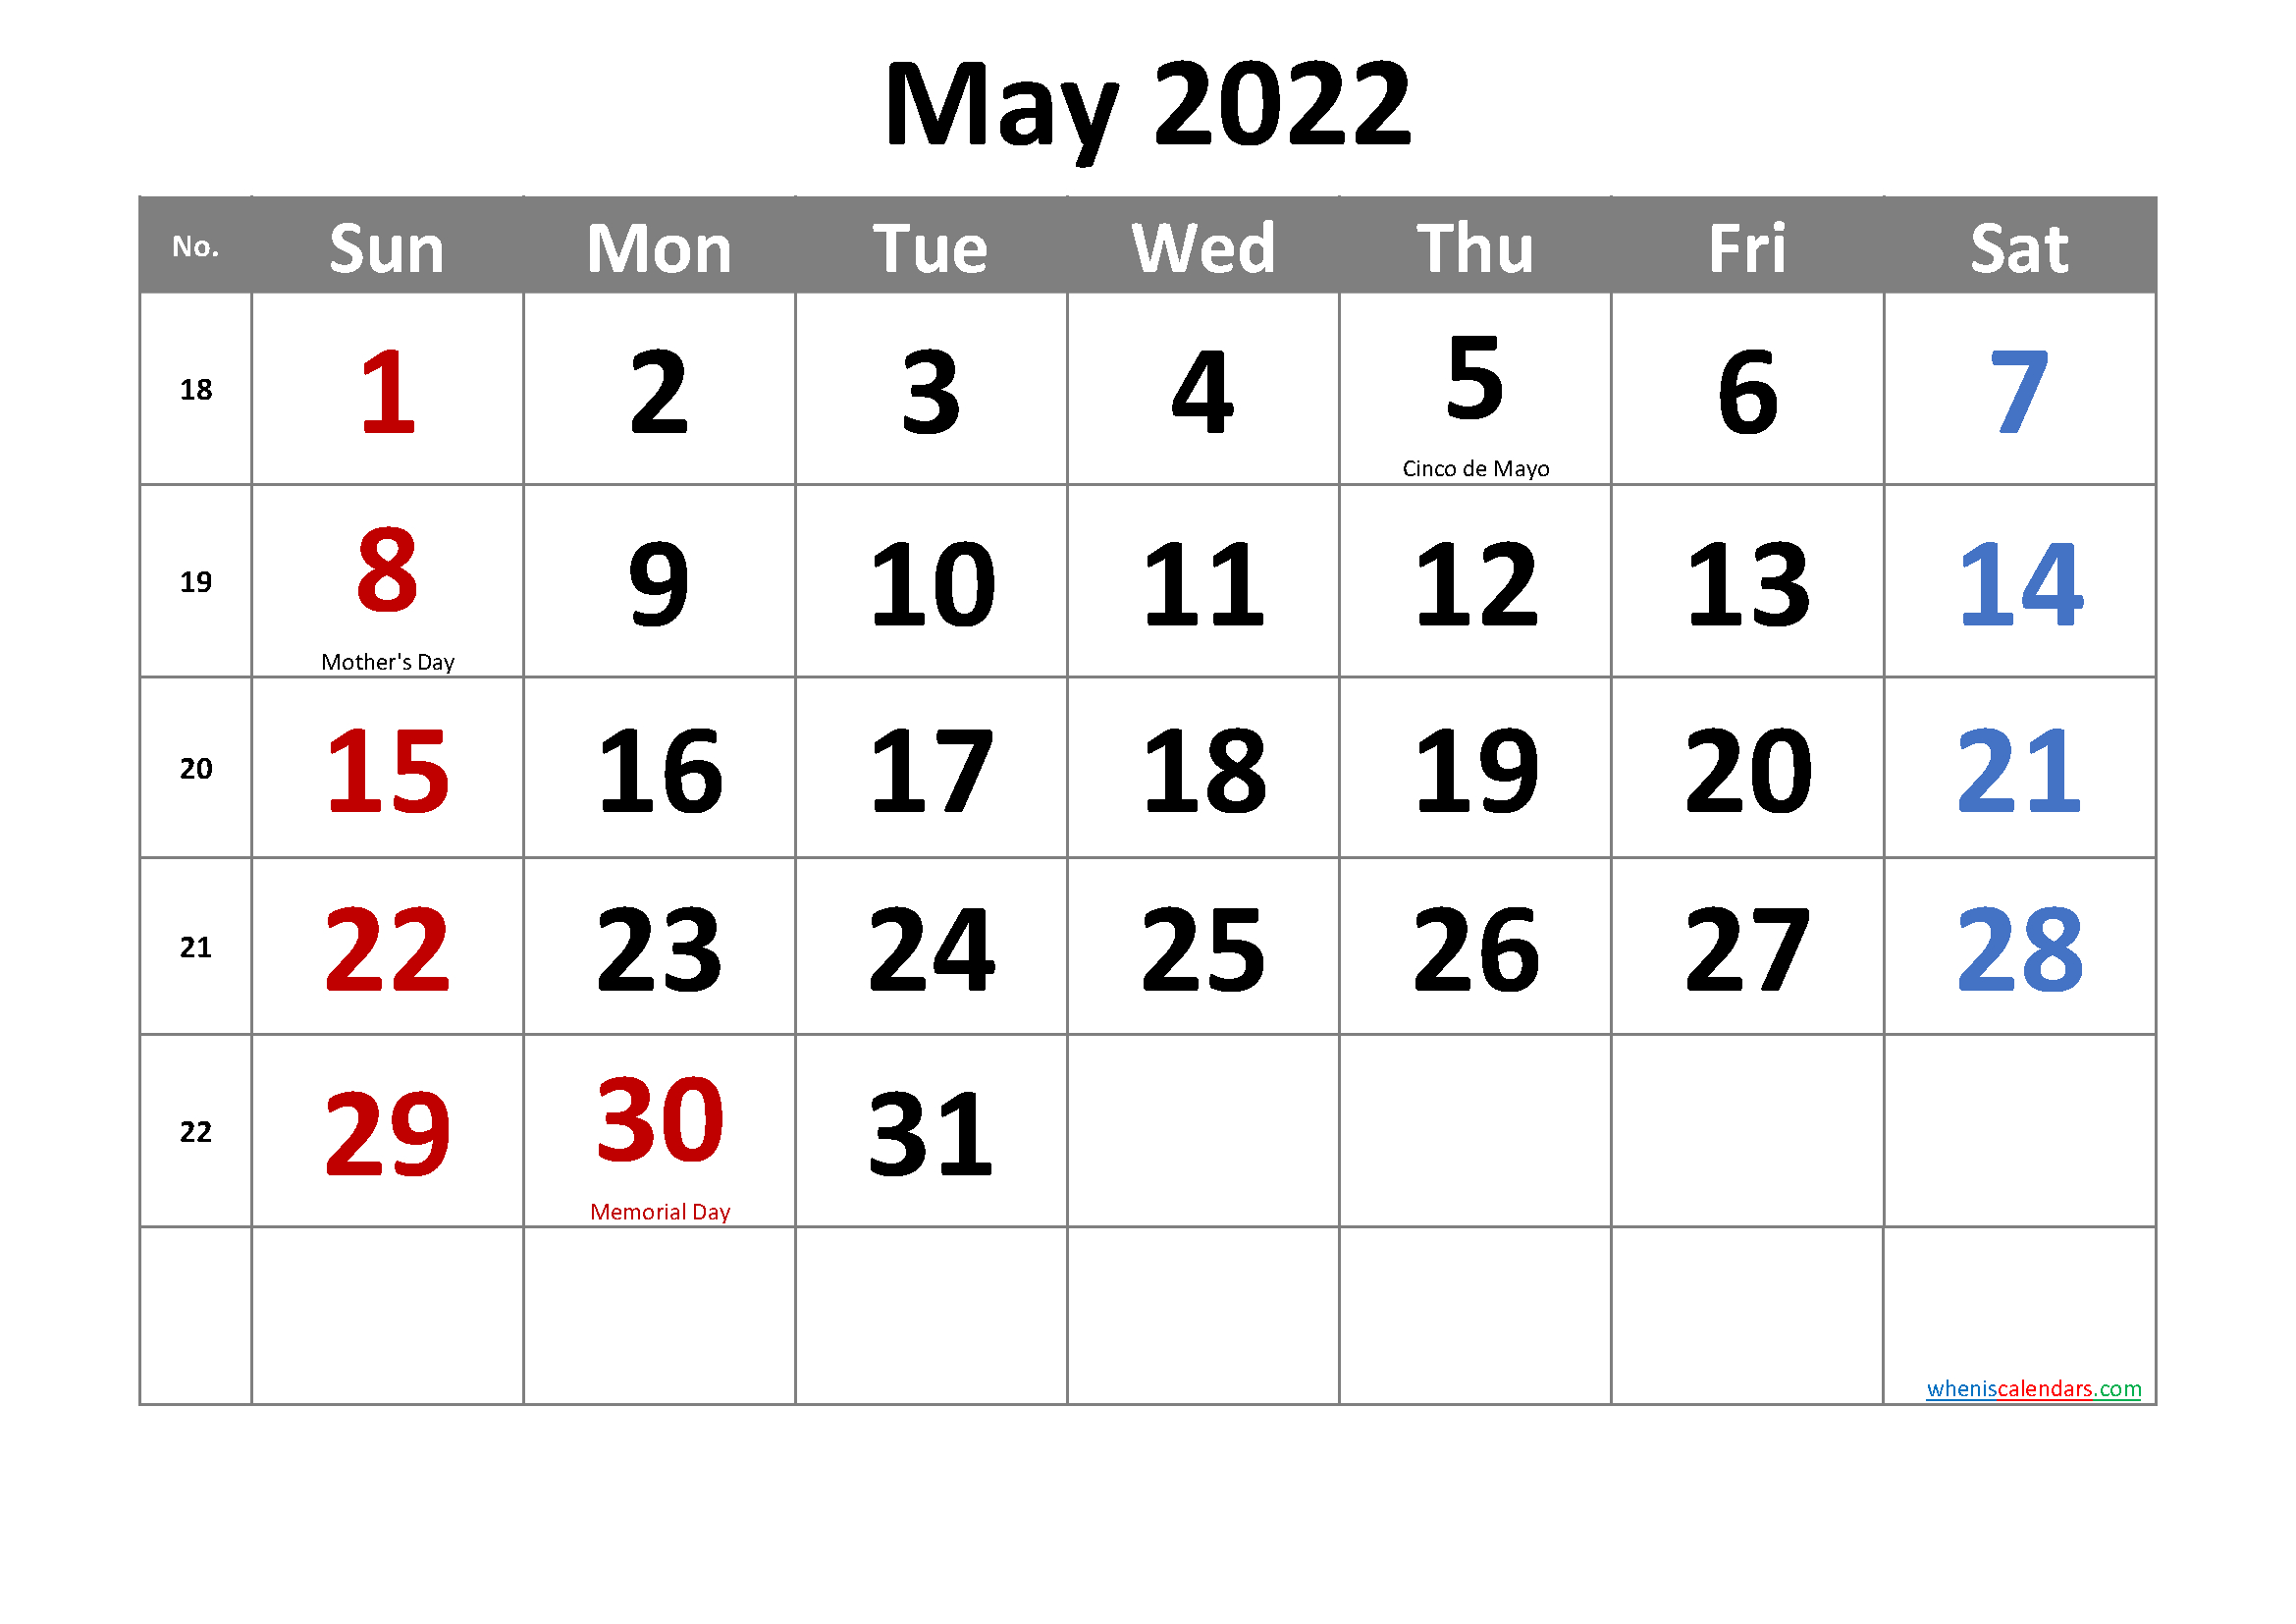 Free May 2022 Calendar Printable intended for May 2022 Calendar Template